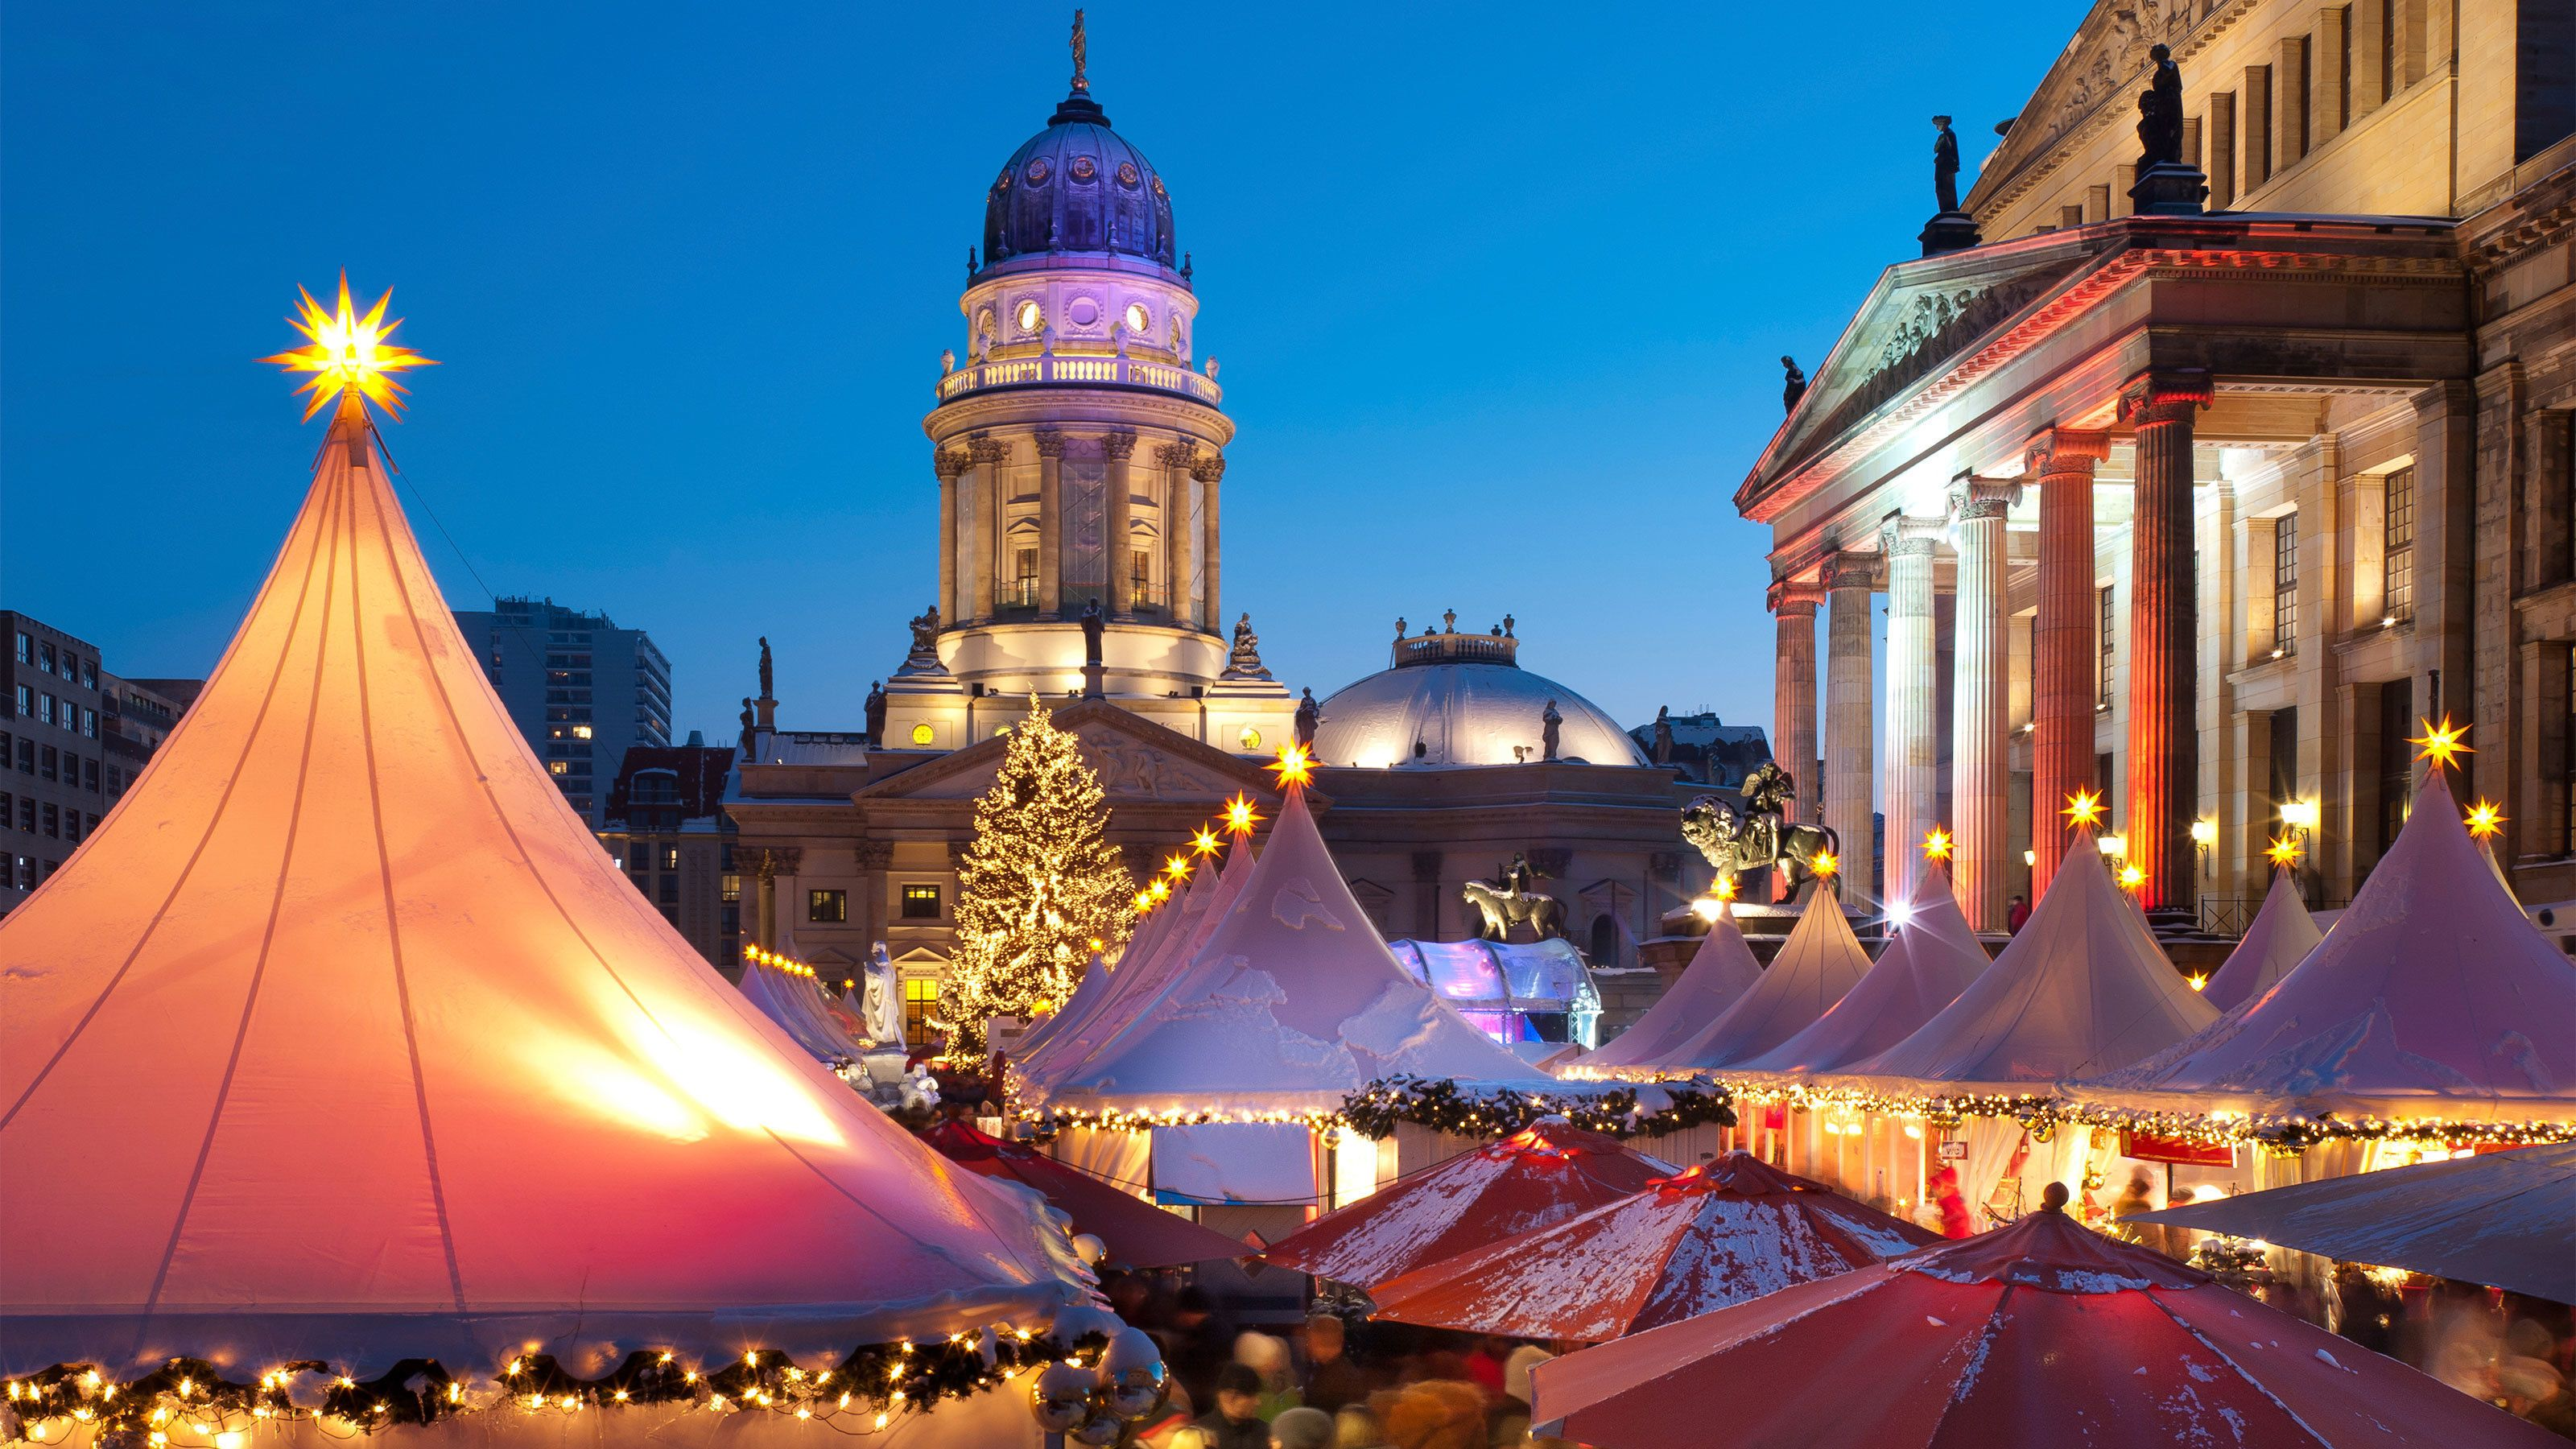 Tents of the Christmas market at night in Berlin